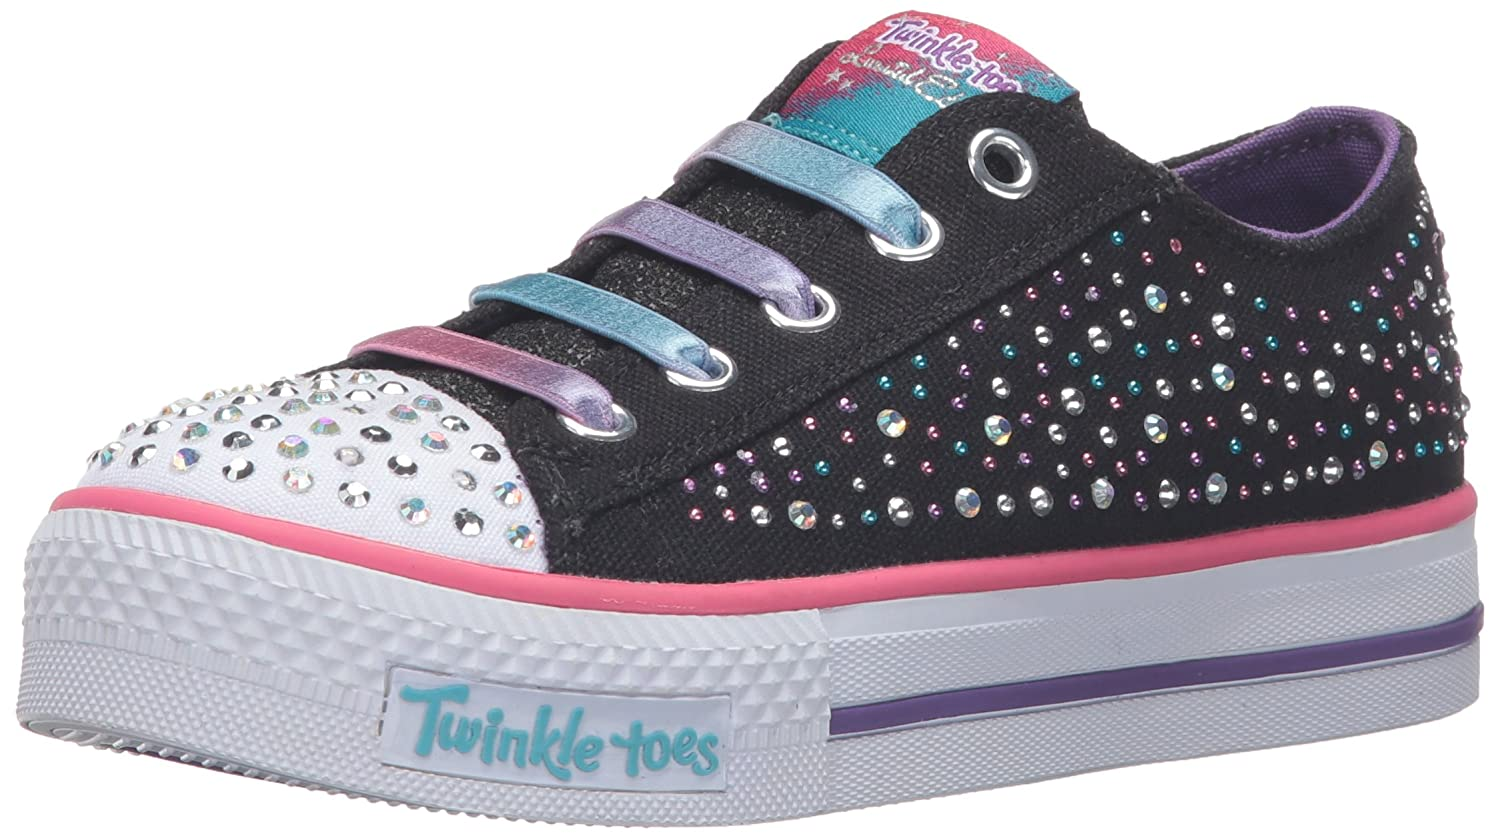 Skechers Kids Twinkle Toes Chit Chat Light-up Lace-up 10627L